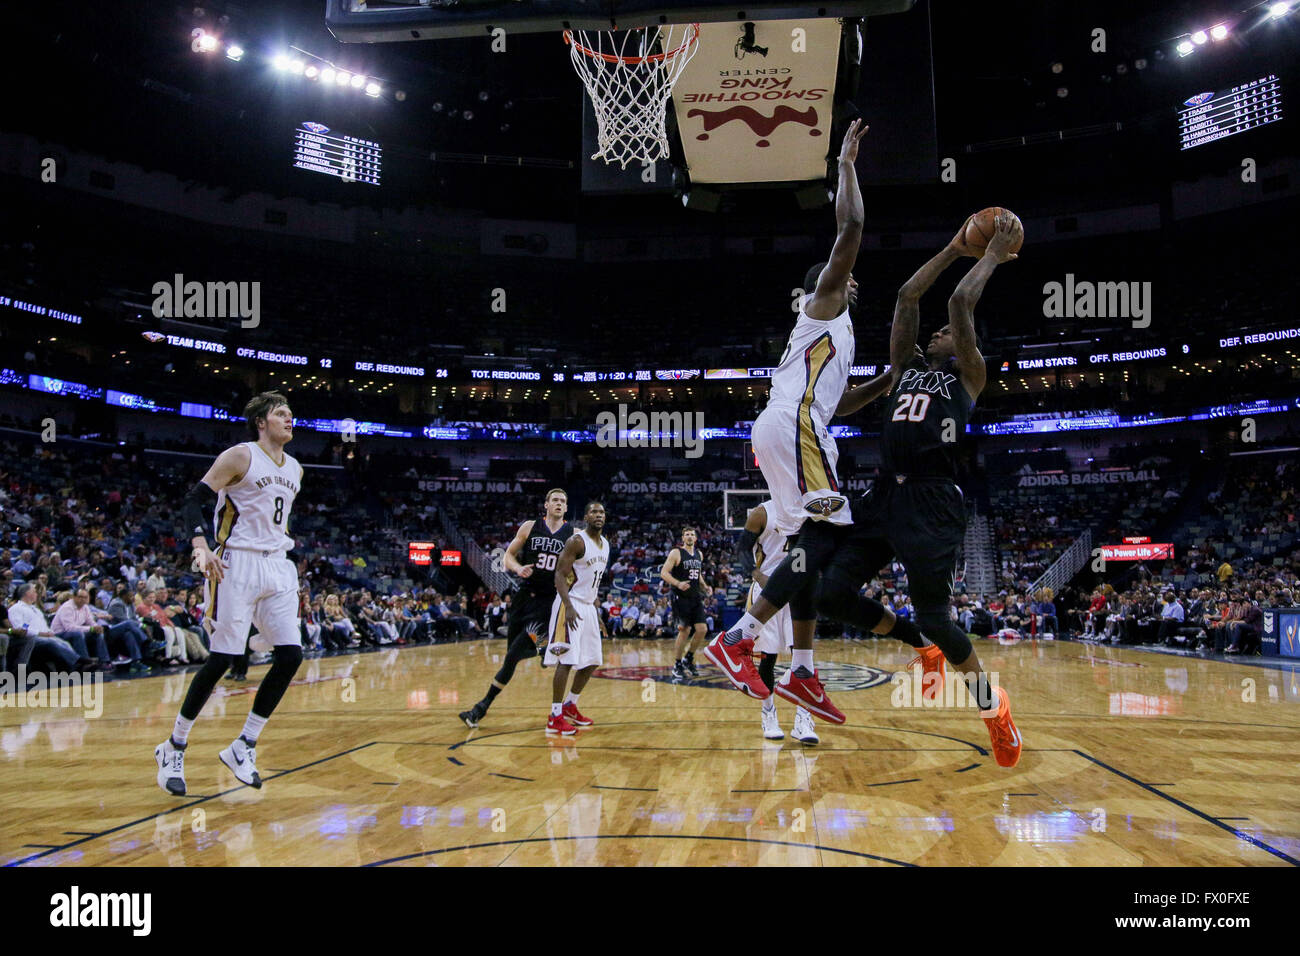 New Orleans, LA, USA. 09th Apr, 2016. Phoenix Suns guard Archie Goodwin (20) shoots a jumpshot during an NBA basketball - Stock Image